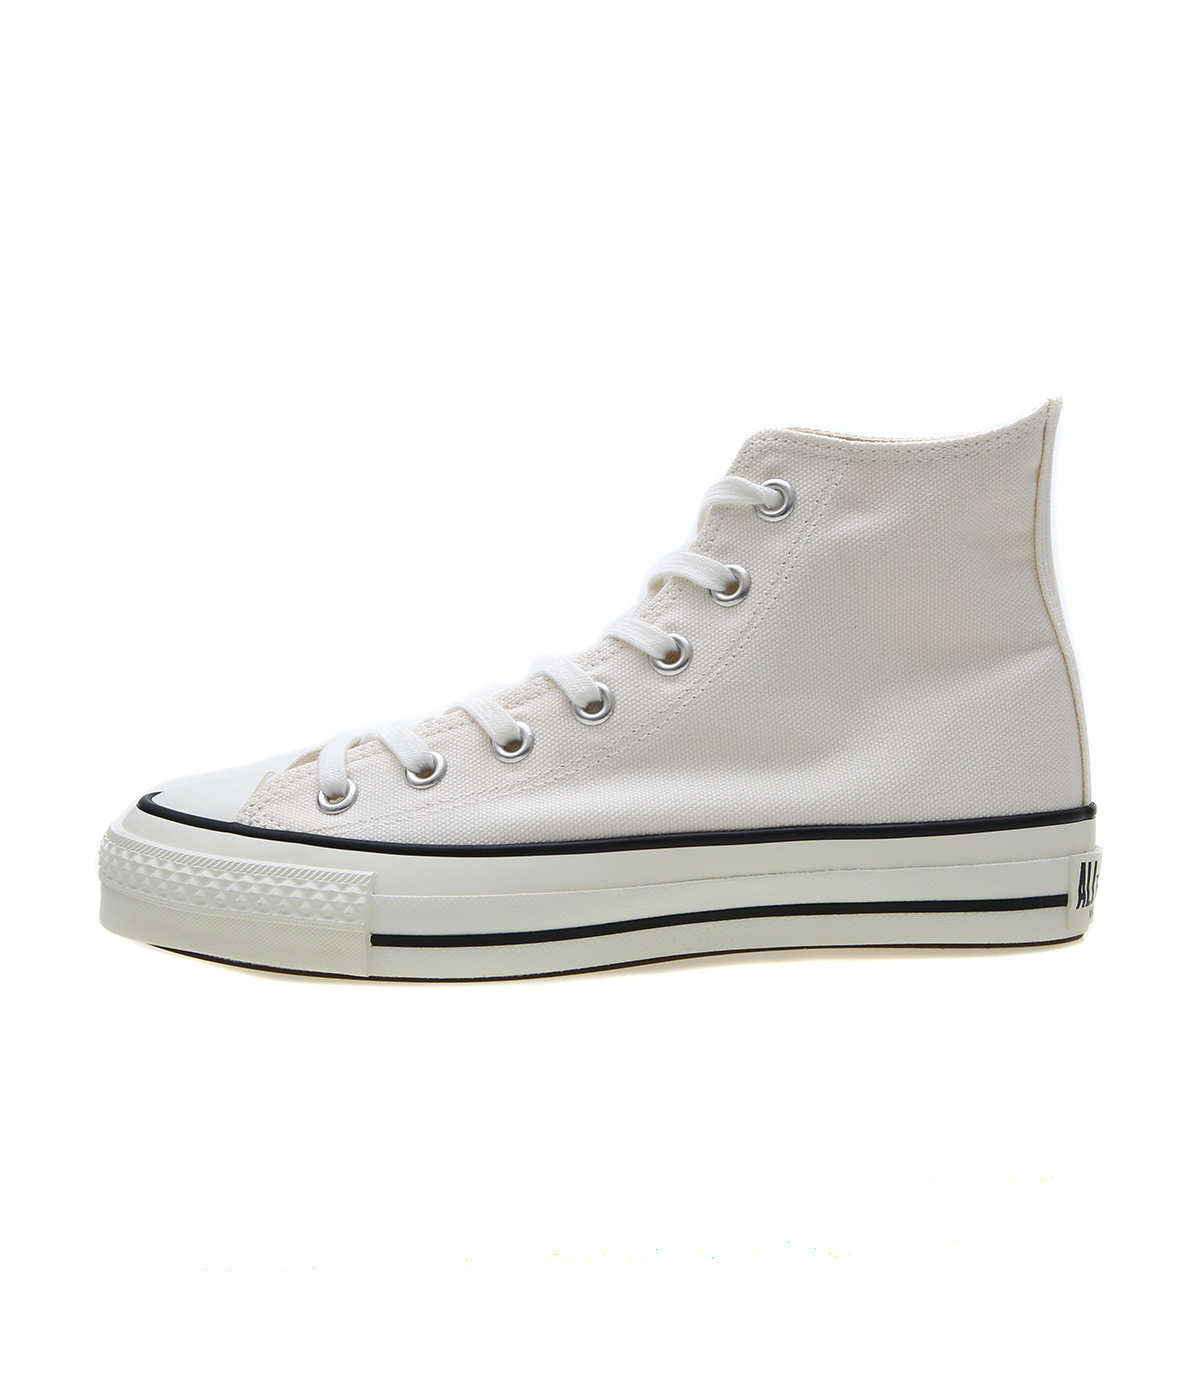 CANVAS ALL STAR J HI -ホワイト